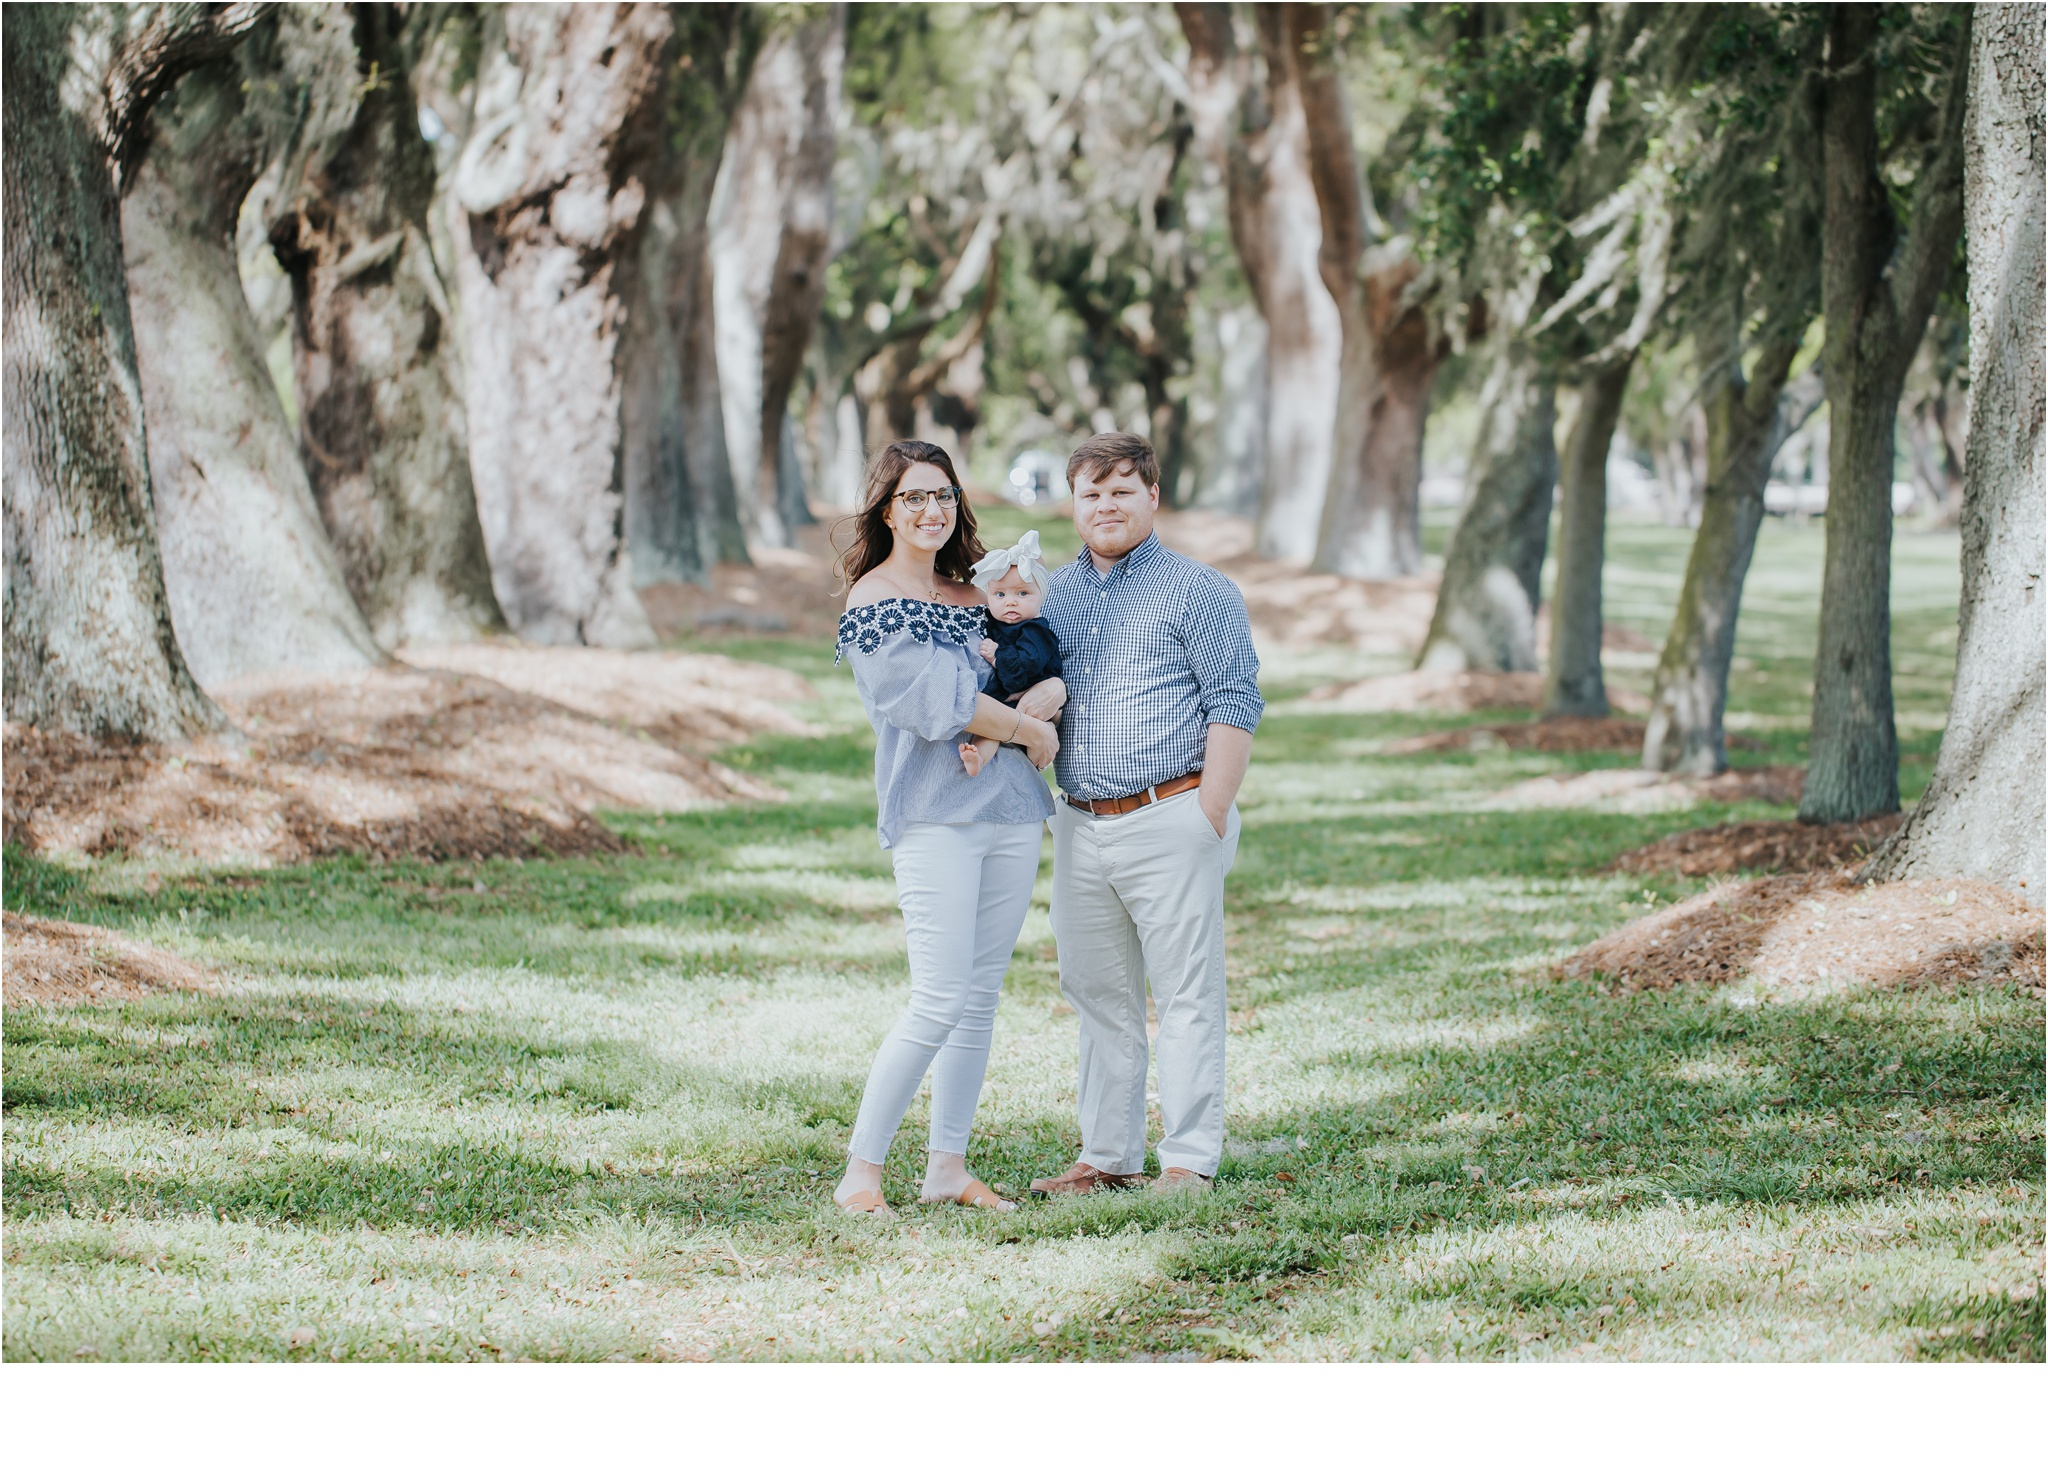 Rainey_Gregg_Photography_St._Simons_Island_Georgia_California_Wedding_Portrait_Photography_1708.jpg